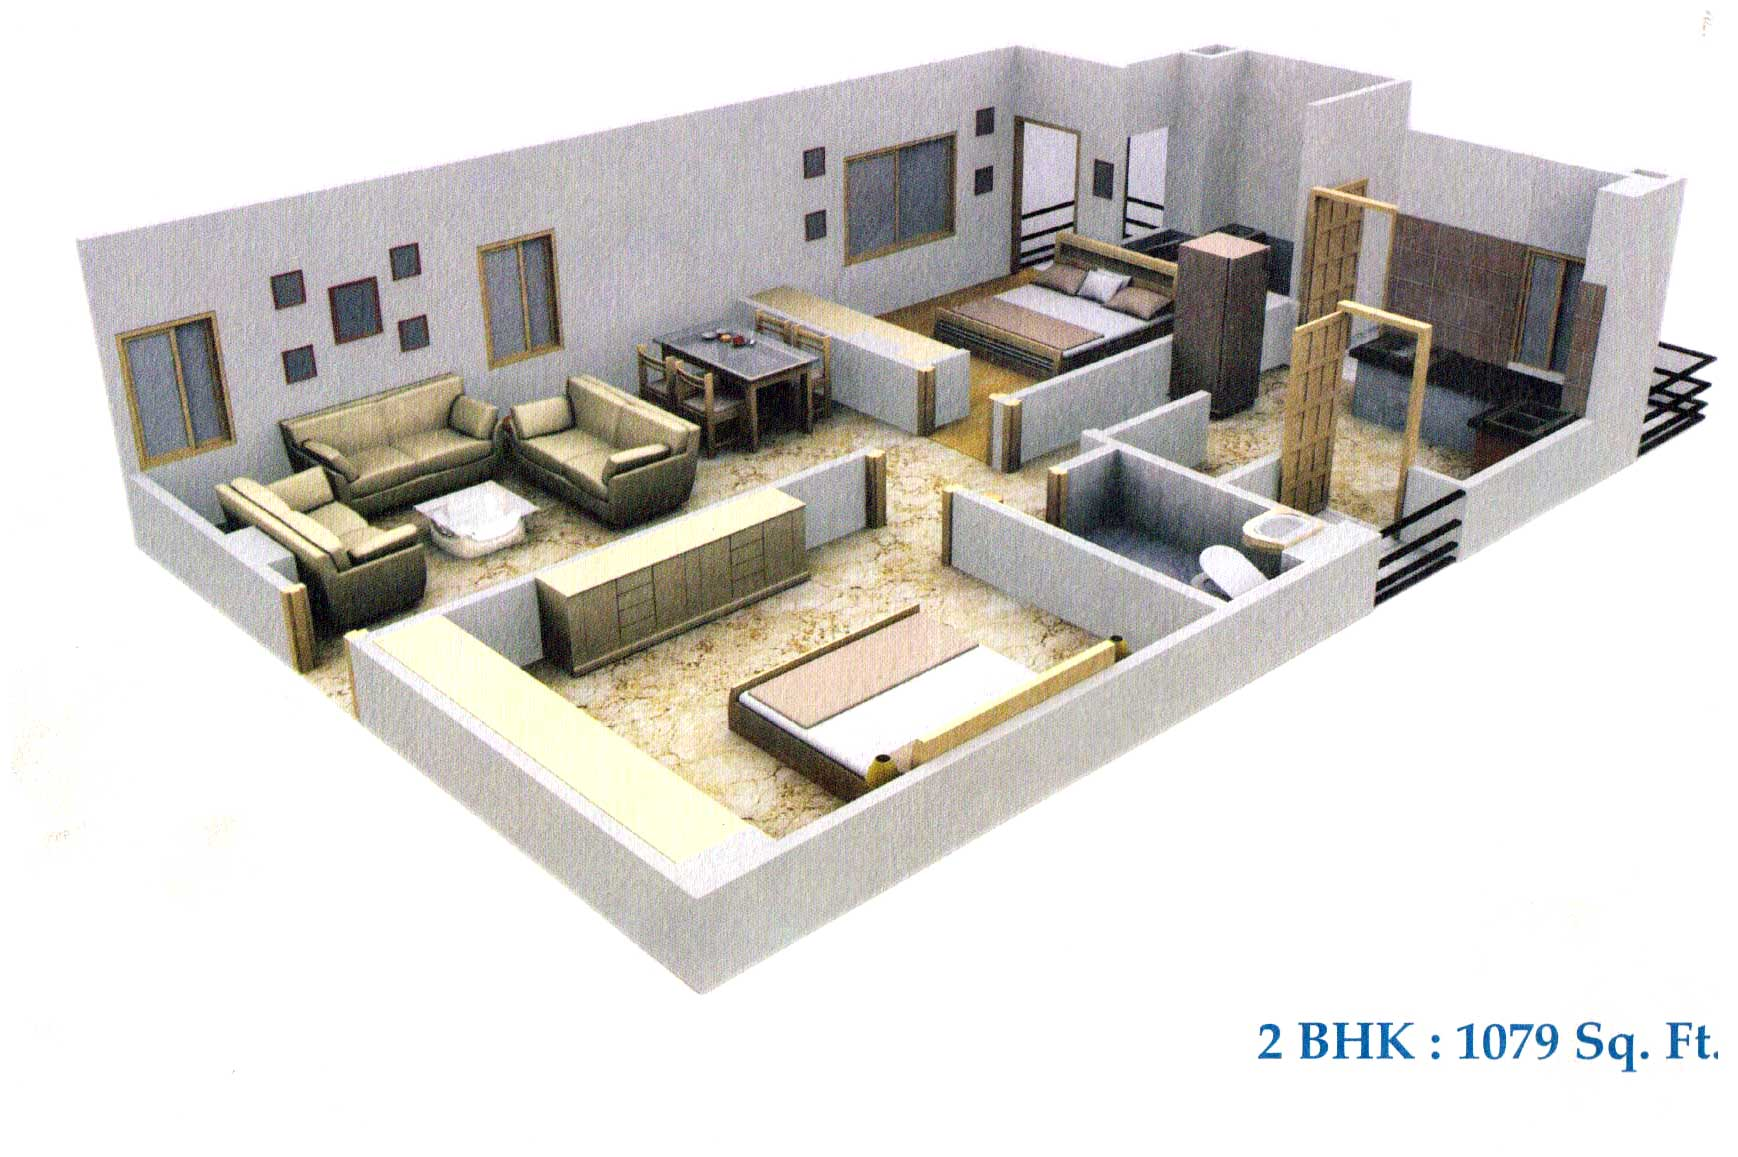 Prayas udaipur rajasthan india 2 3 bhk apartments in for 2 bhk house designs in india